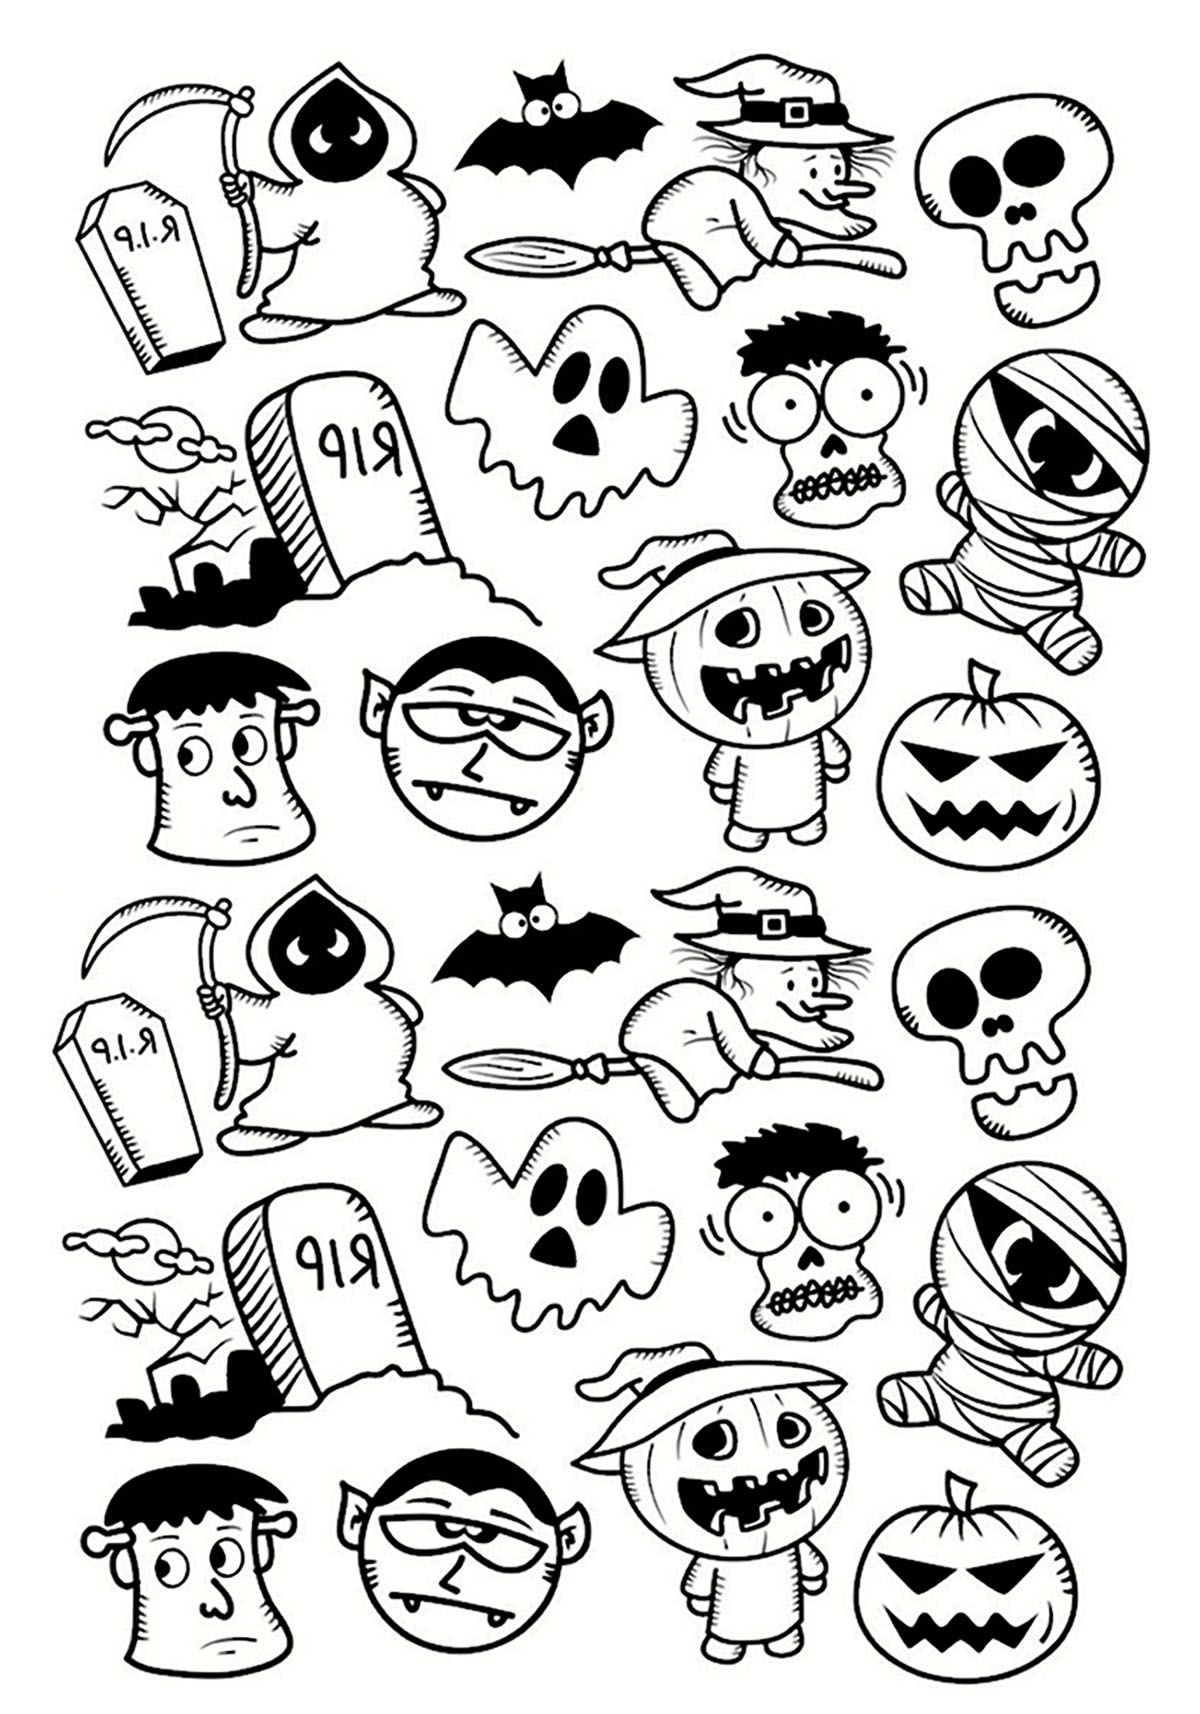 Halloween doodle characters Halloween Coloring Pages for